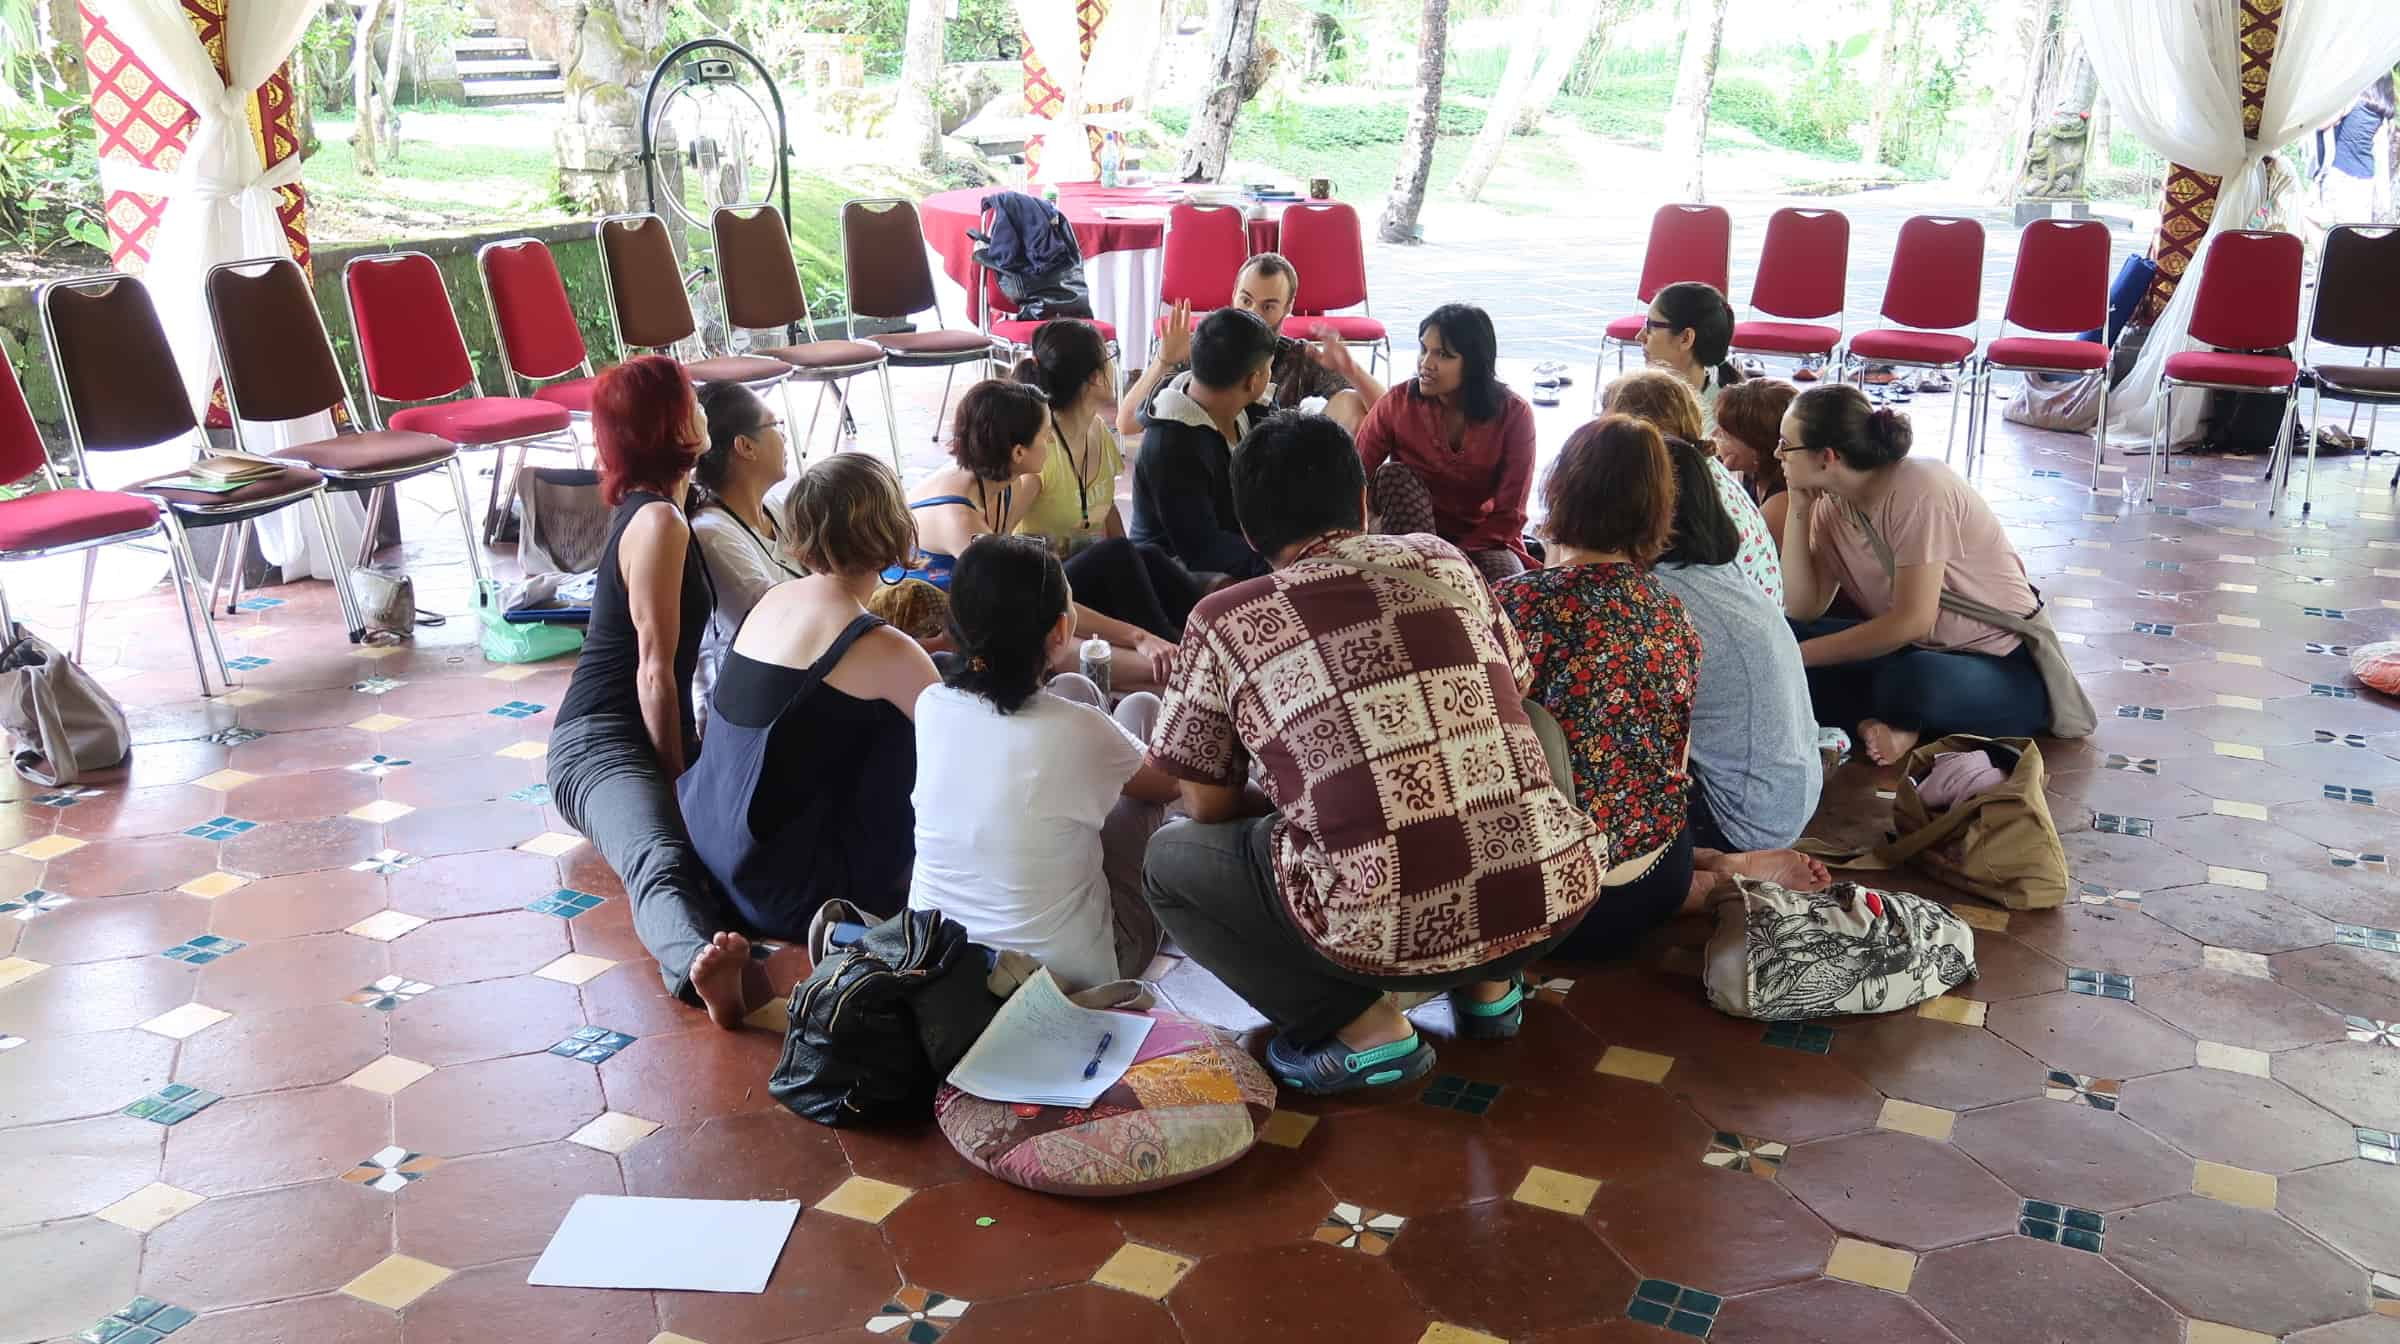 People sitting on floor in circle engaged in an activity.